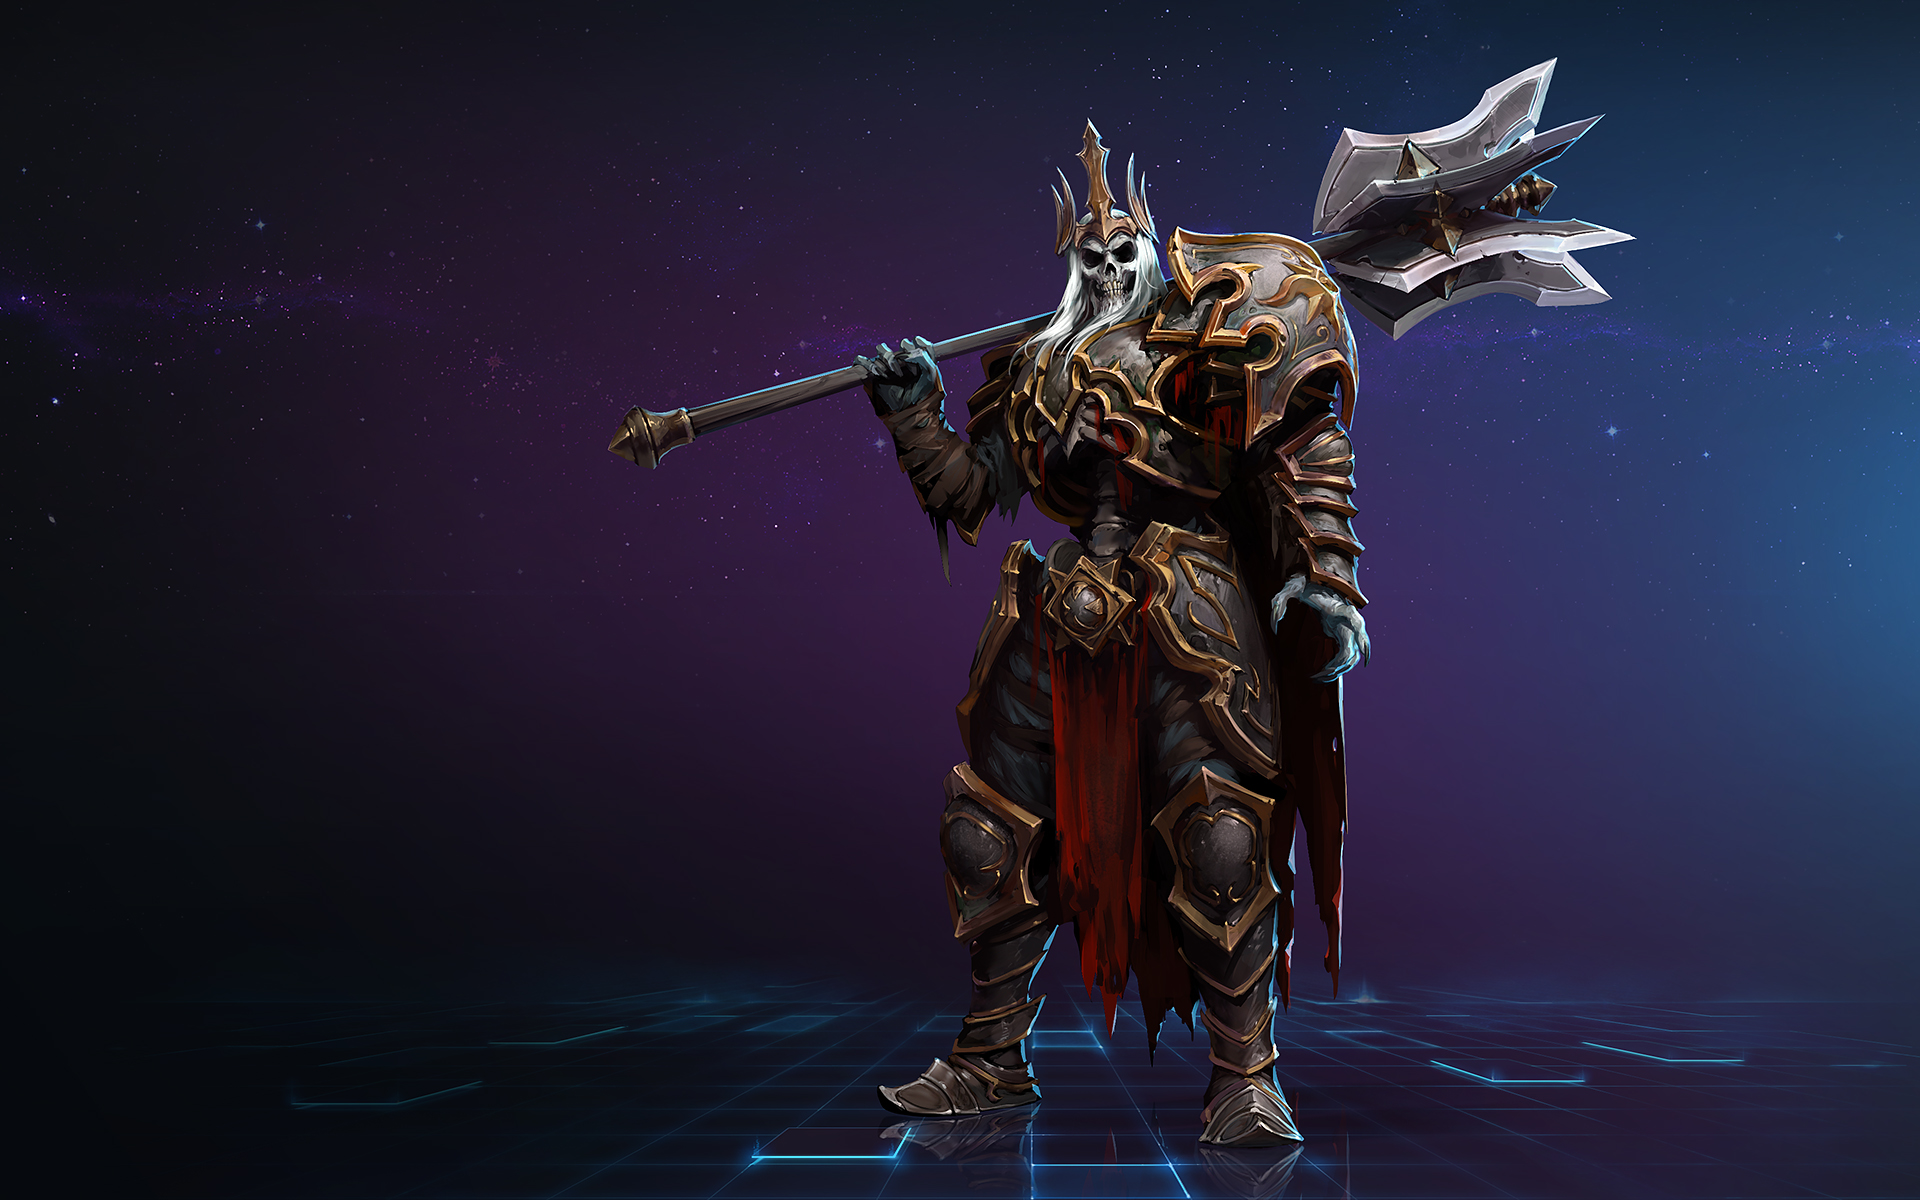 Leoric Heroes Of The Storm Wiki Driven to madness by the spirit of diablo, leoric brought untold suffering on his kingdom. leoric heroes of the storm wiki